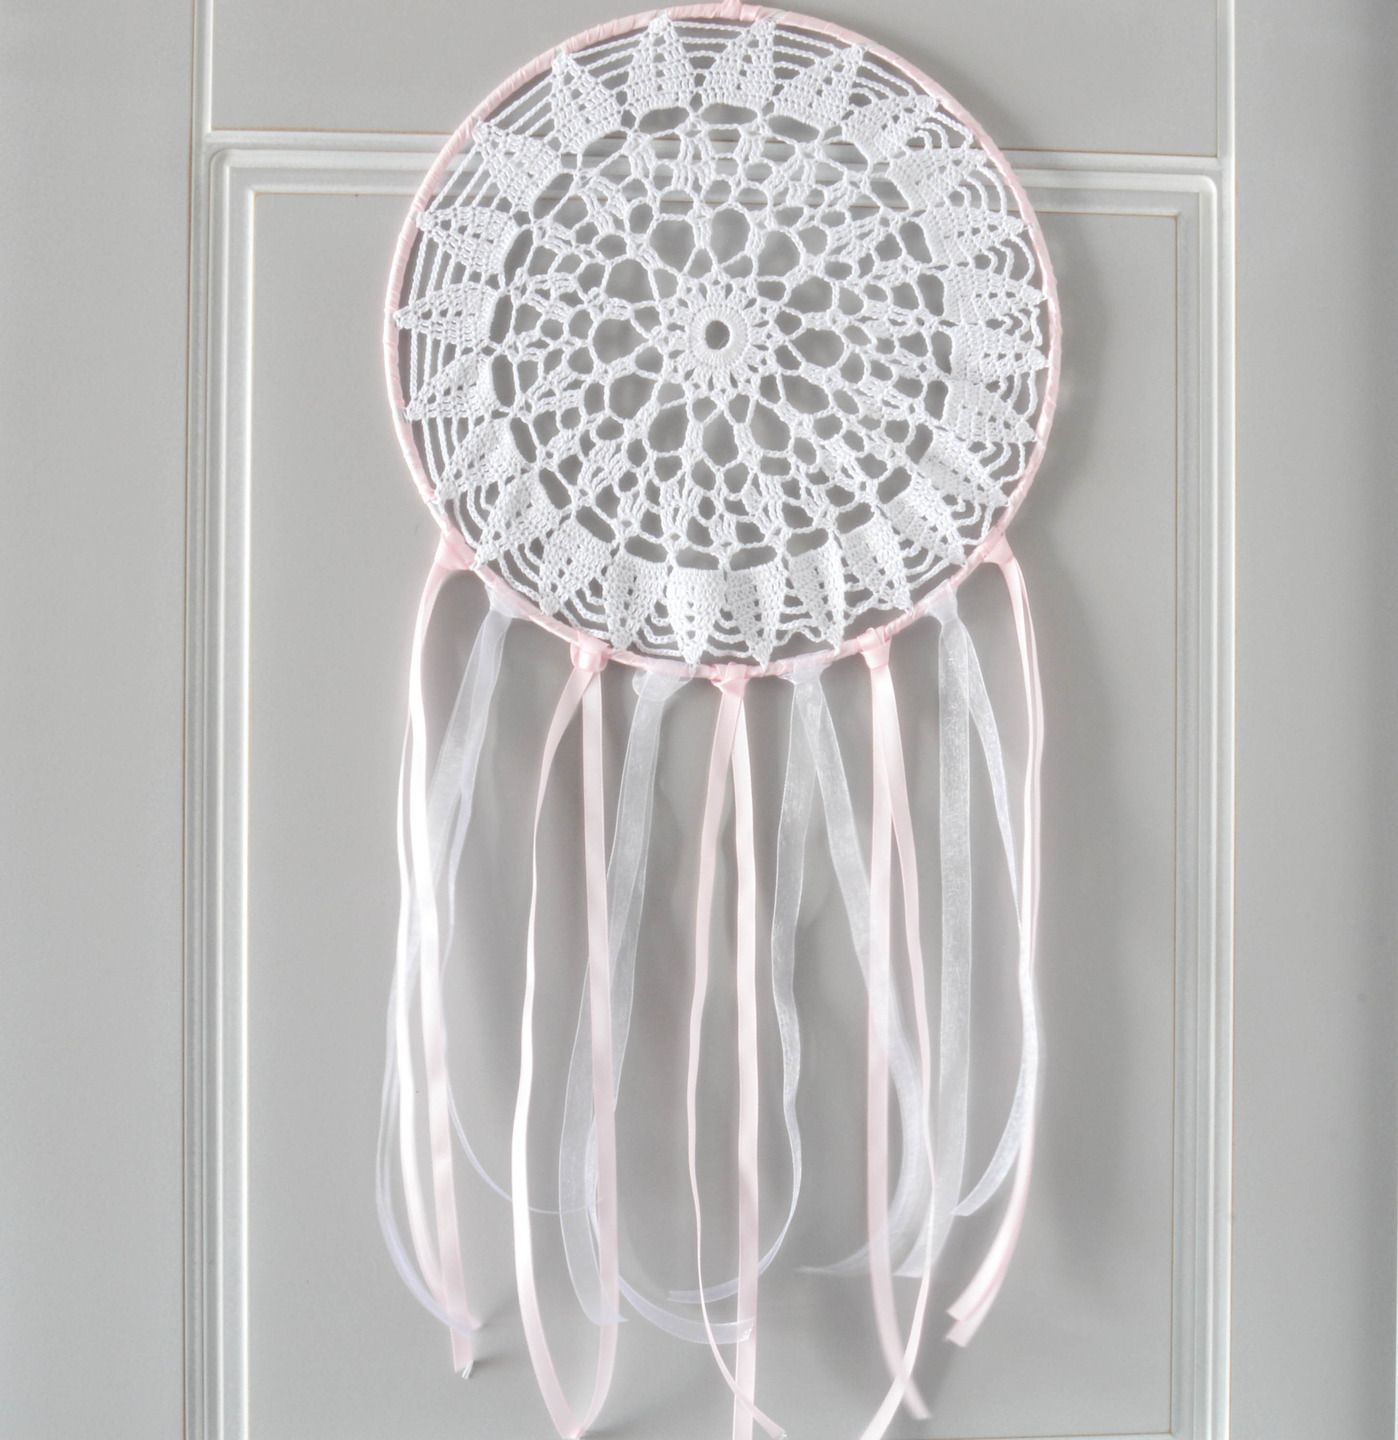 Attrape r ves dreamcatcher capteur de r ve 25 cm de diam tre napperon au crochet th me romantique - Attrape reve crochet ...